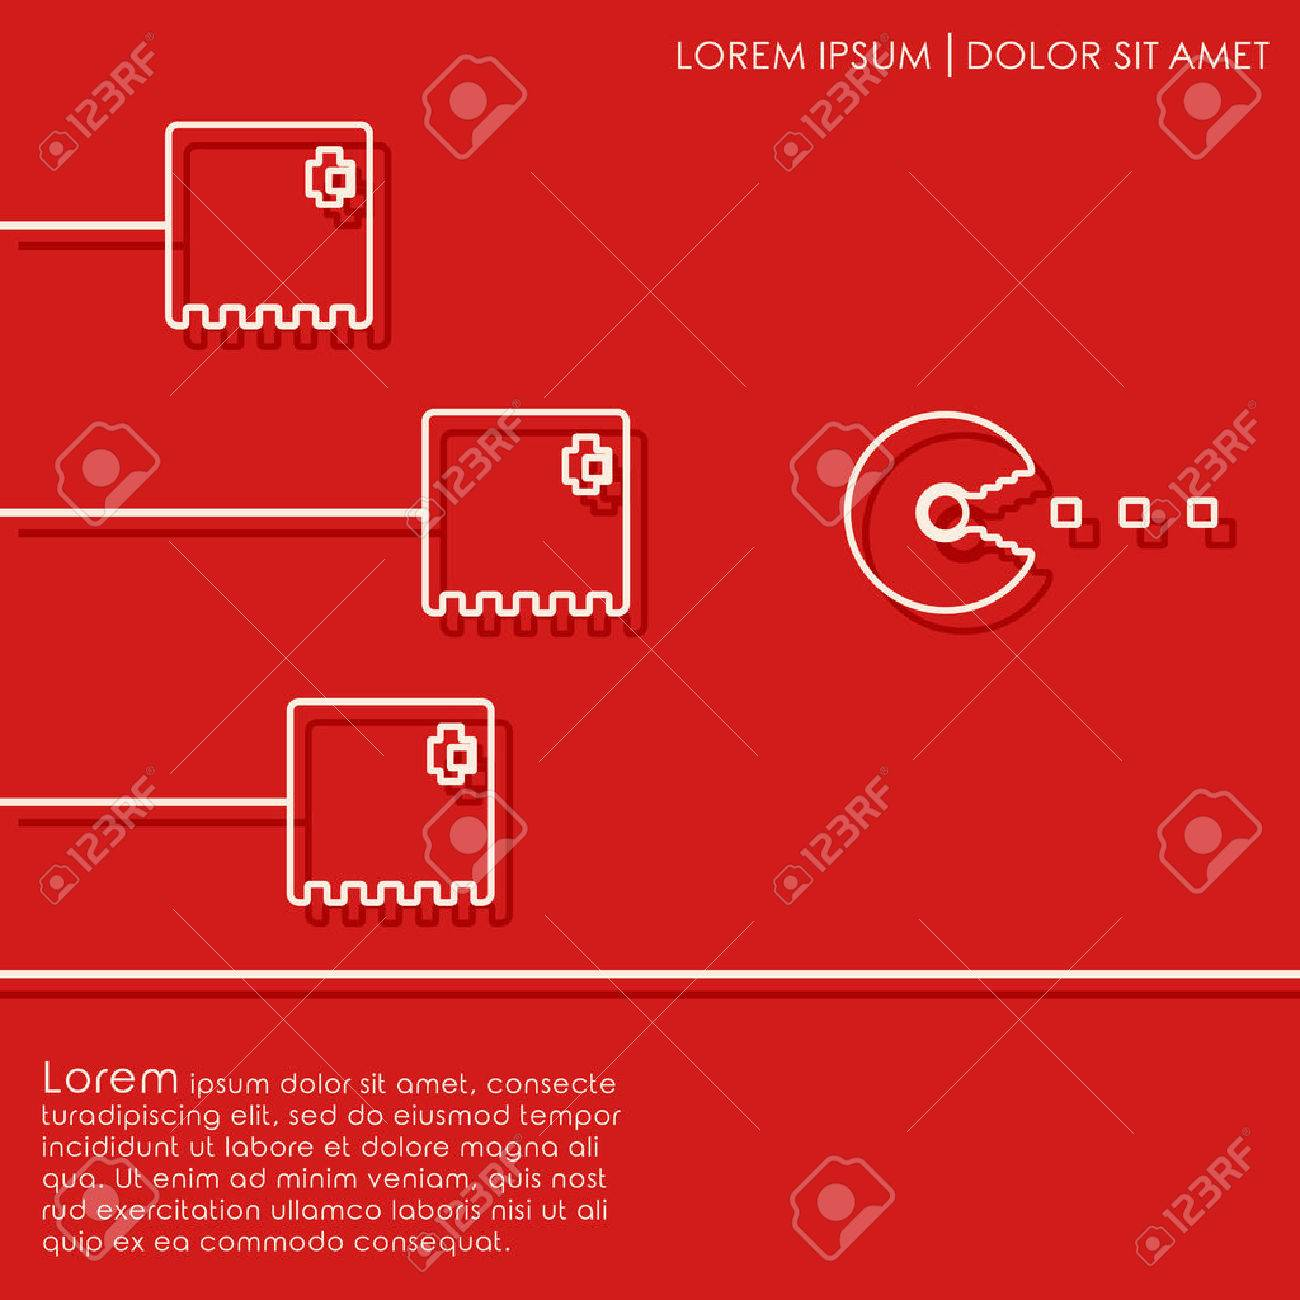 Line Monsters On Red Background Old Video Game Design Cover - Game design template